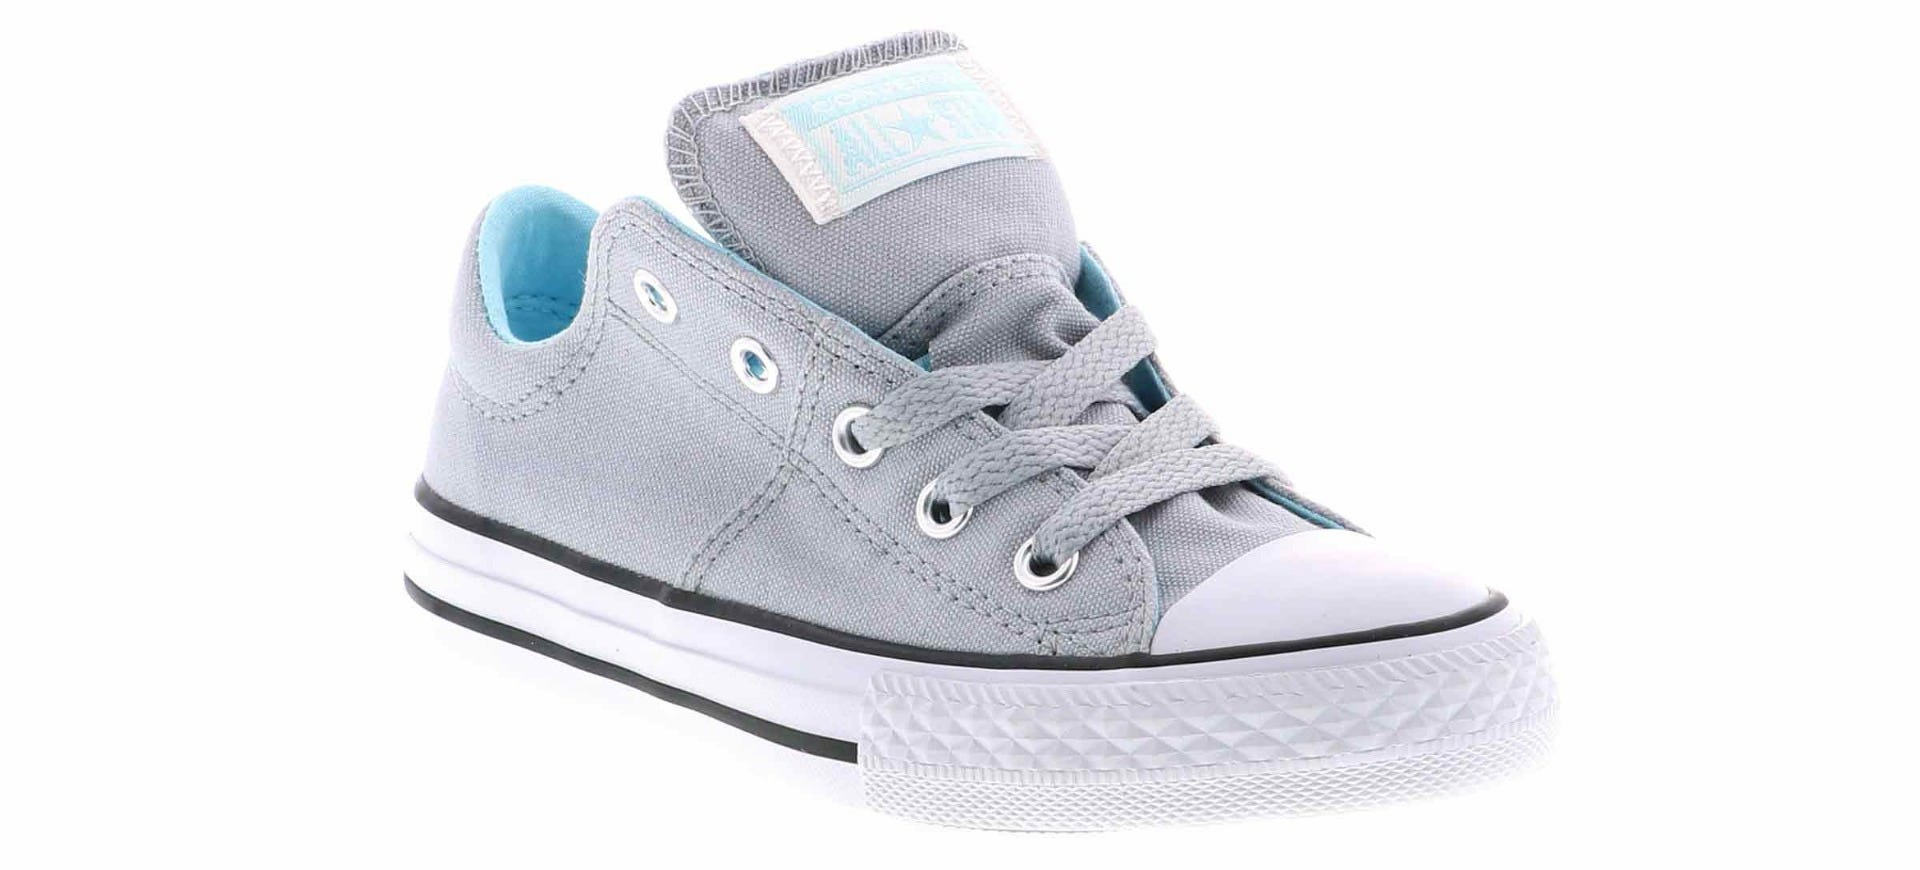 Converse Kid's Madison Ox1 6 Ctas 4jqAR35L